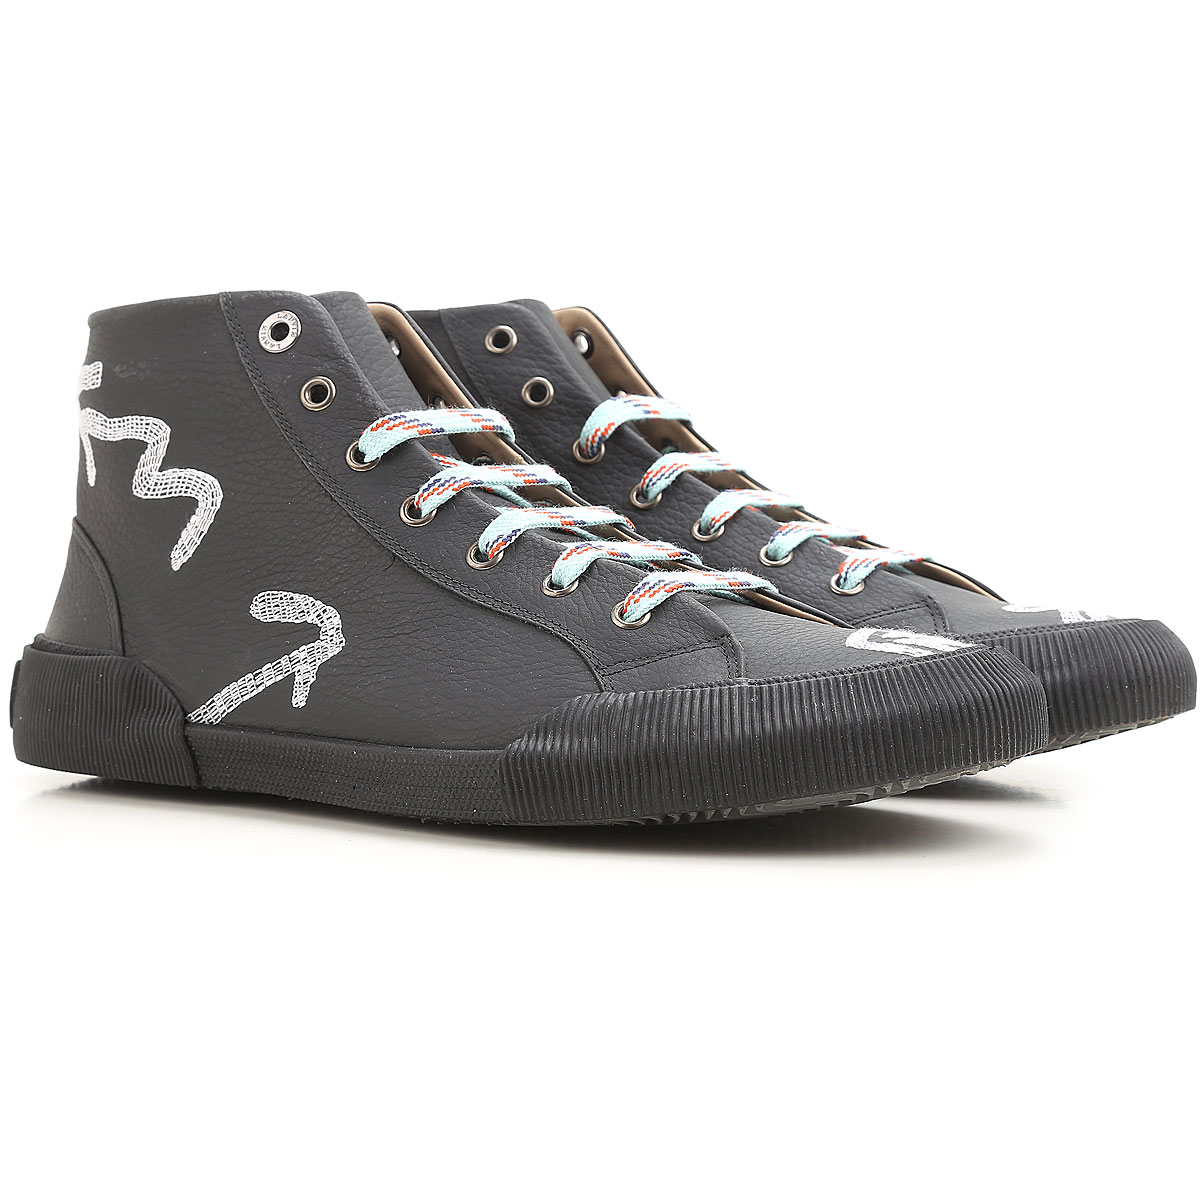 Lanvin Sneakers for Men On Sale in Outlet, Black, Leather, 2019, 6 7 8 9